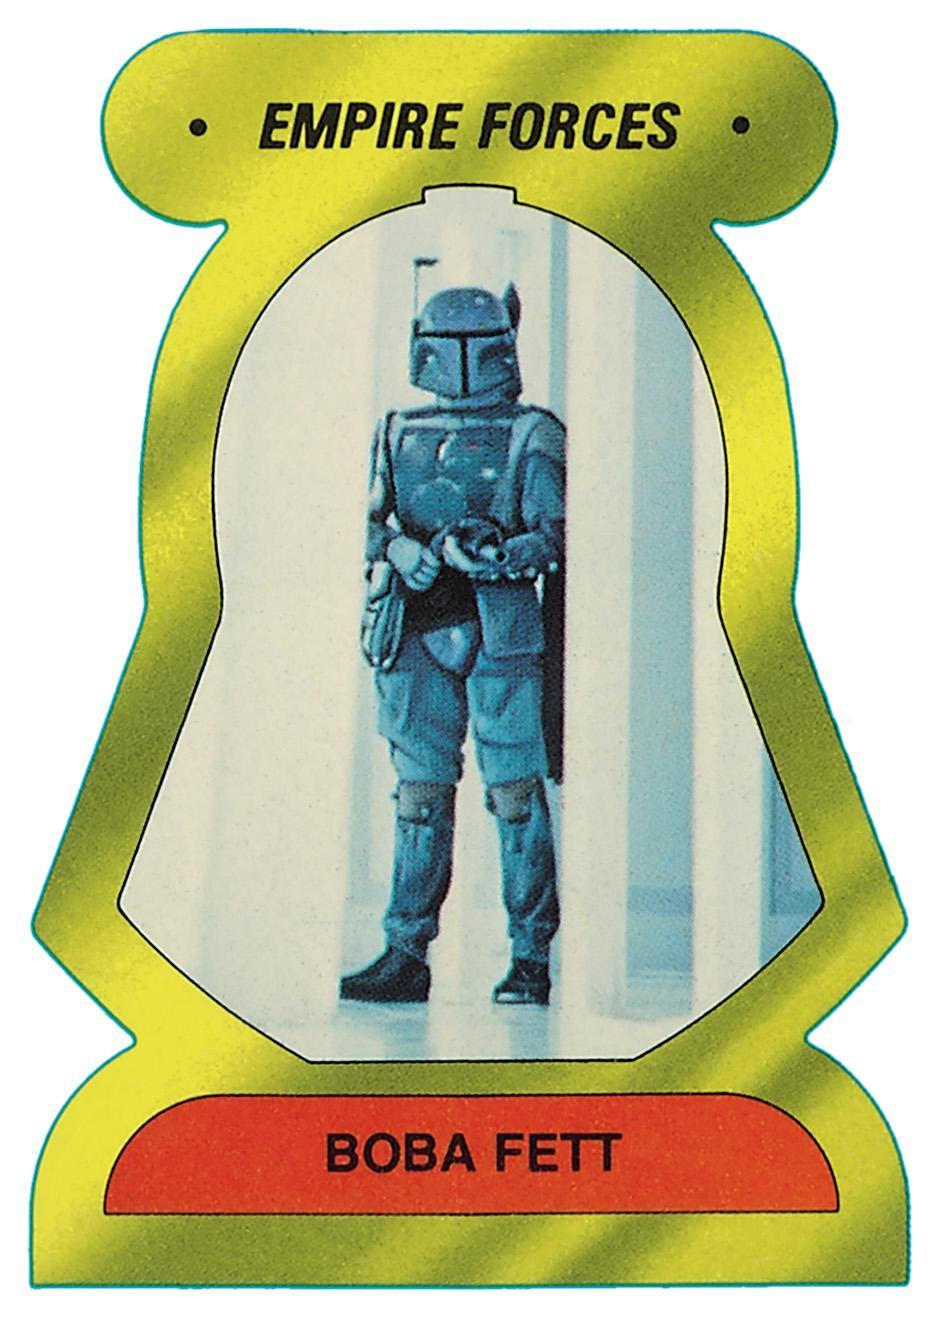 <p>Never identified by his name in <i>Empire</i>, the bounty hunter nonetheless became a fan favorite. (Credit: The Topps Company and Lucasfilm Ltd (C) Abrams Books) </p>